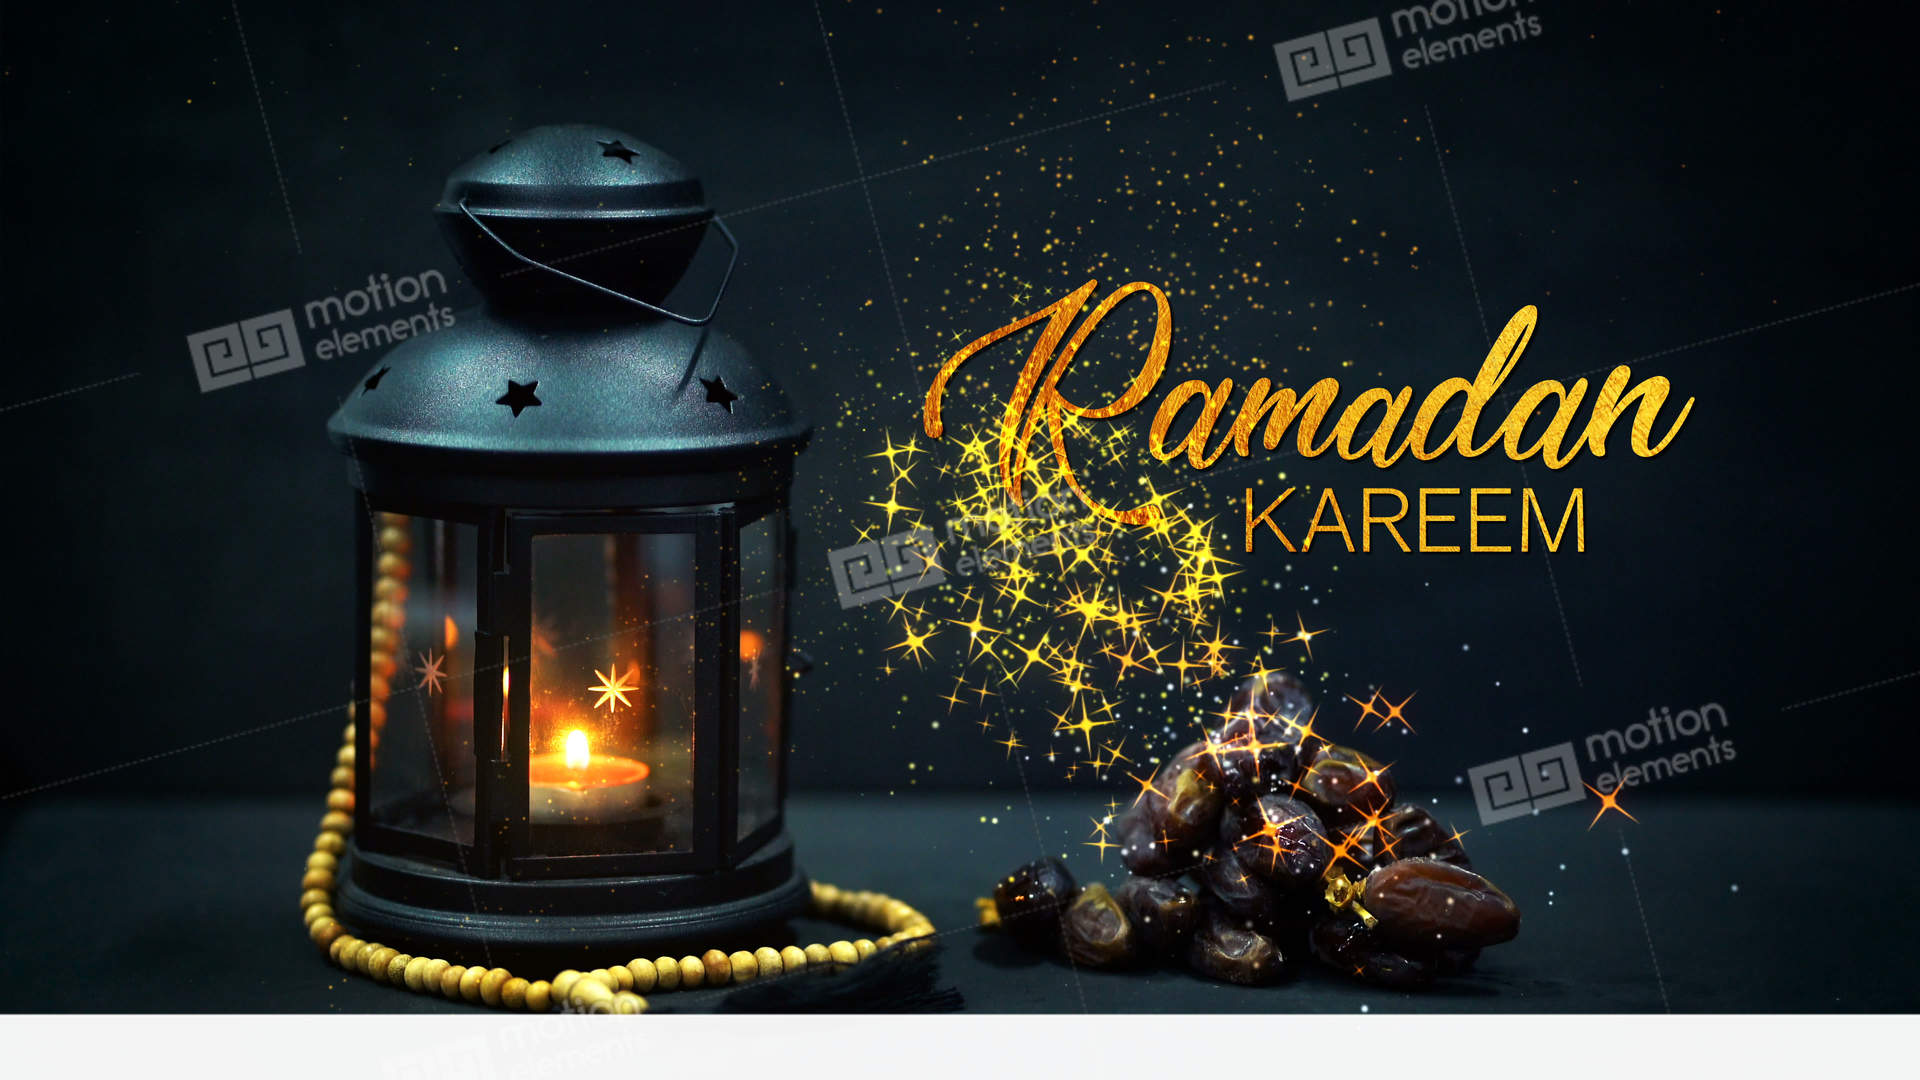 Eid mubarak greeting gold glitter particles ramadan candle lantern with wooden stock animation eid mubarak greeting gold glitter particles ramadan stock video footage m4hsunfo